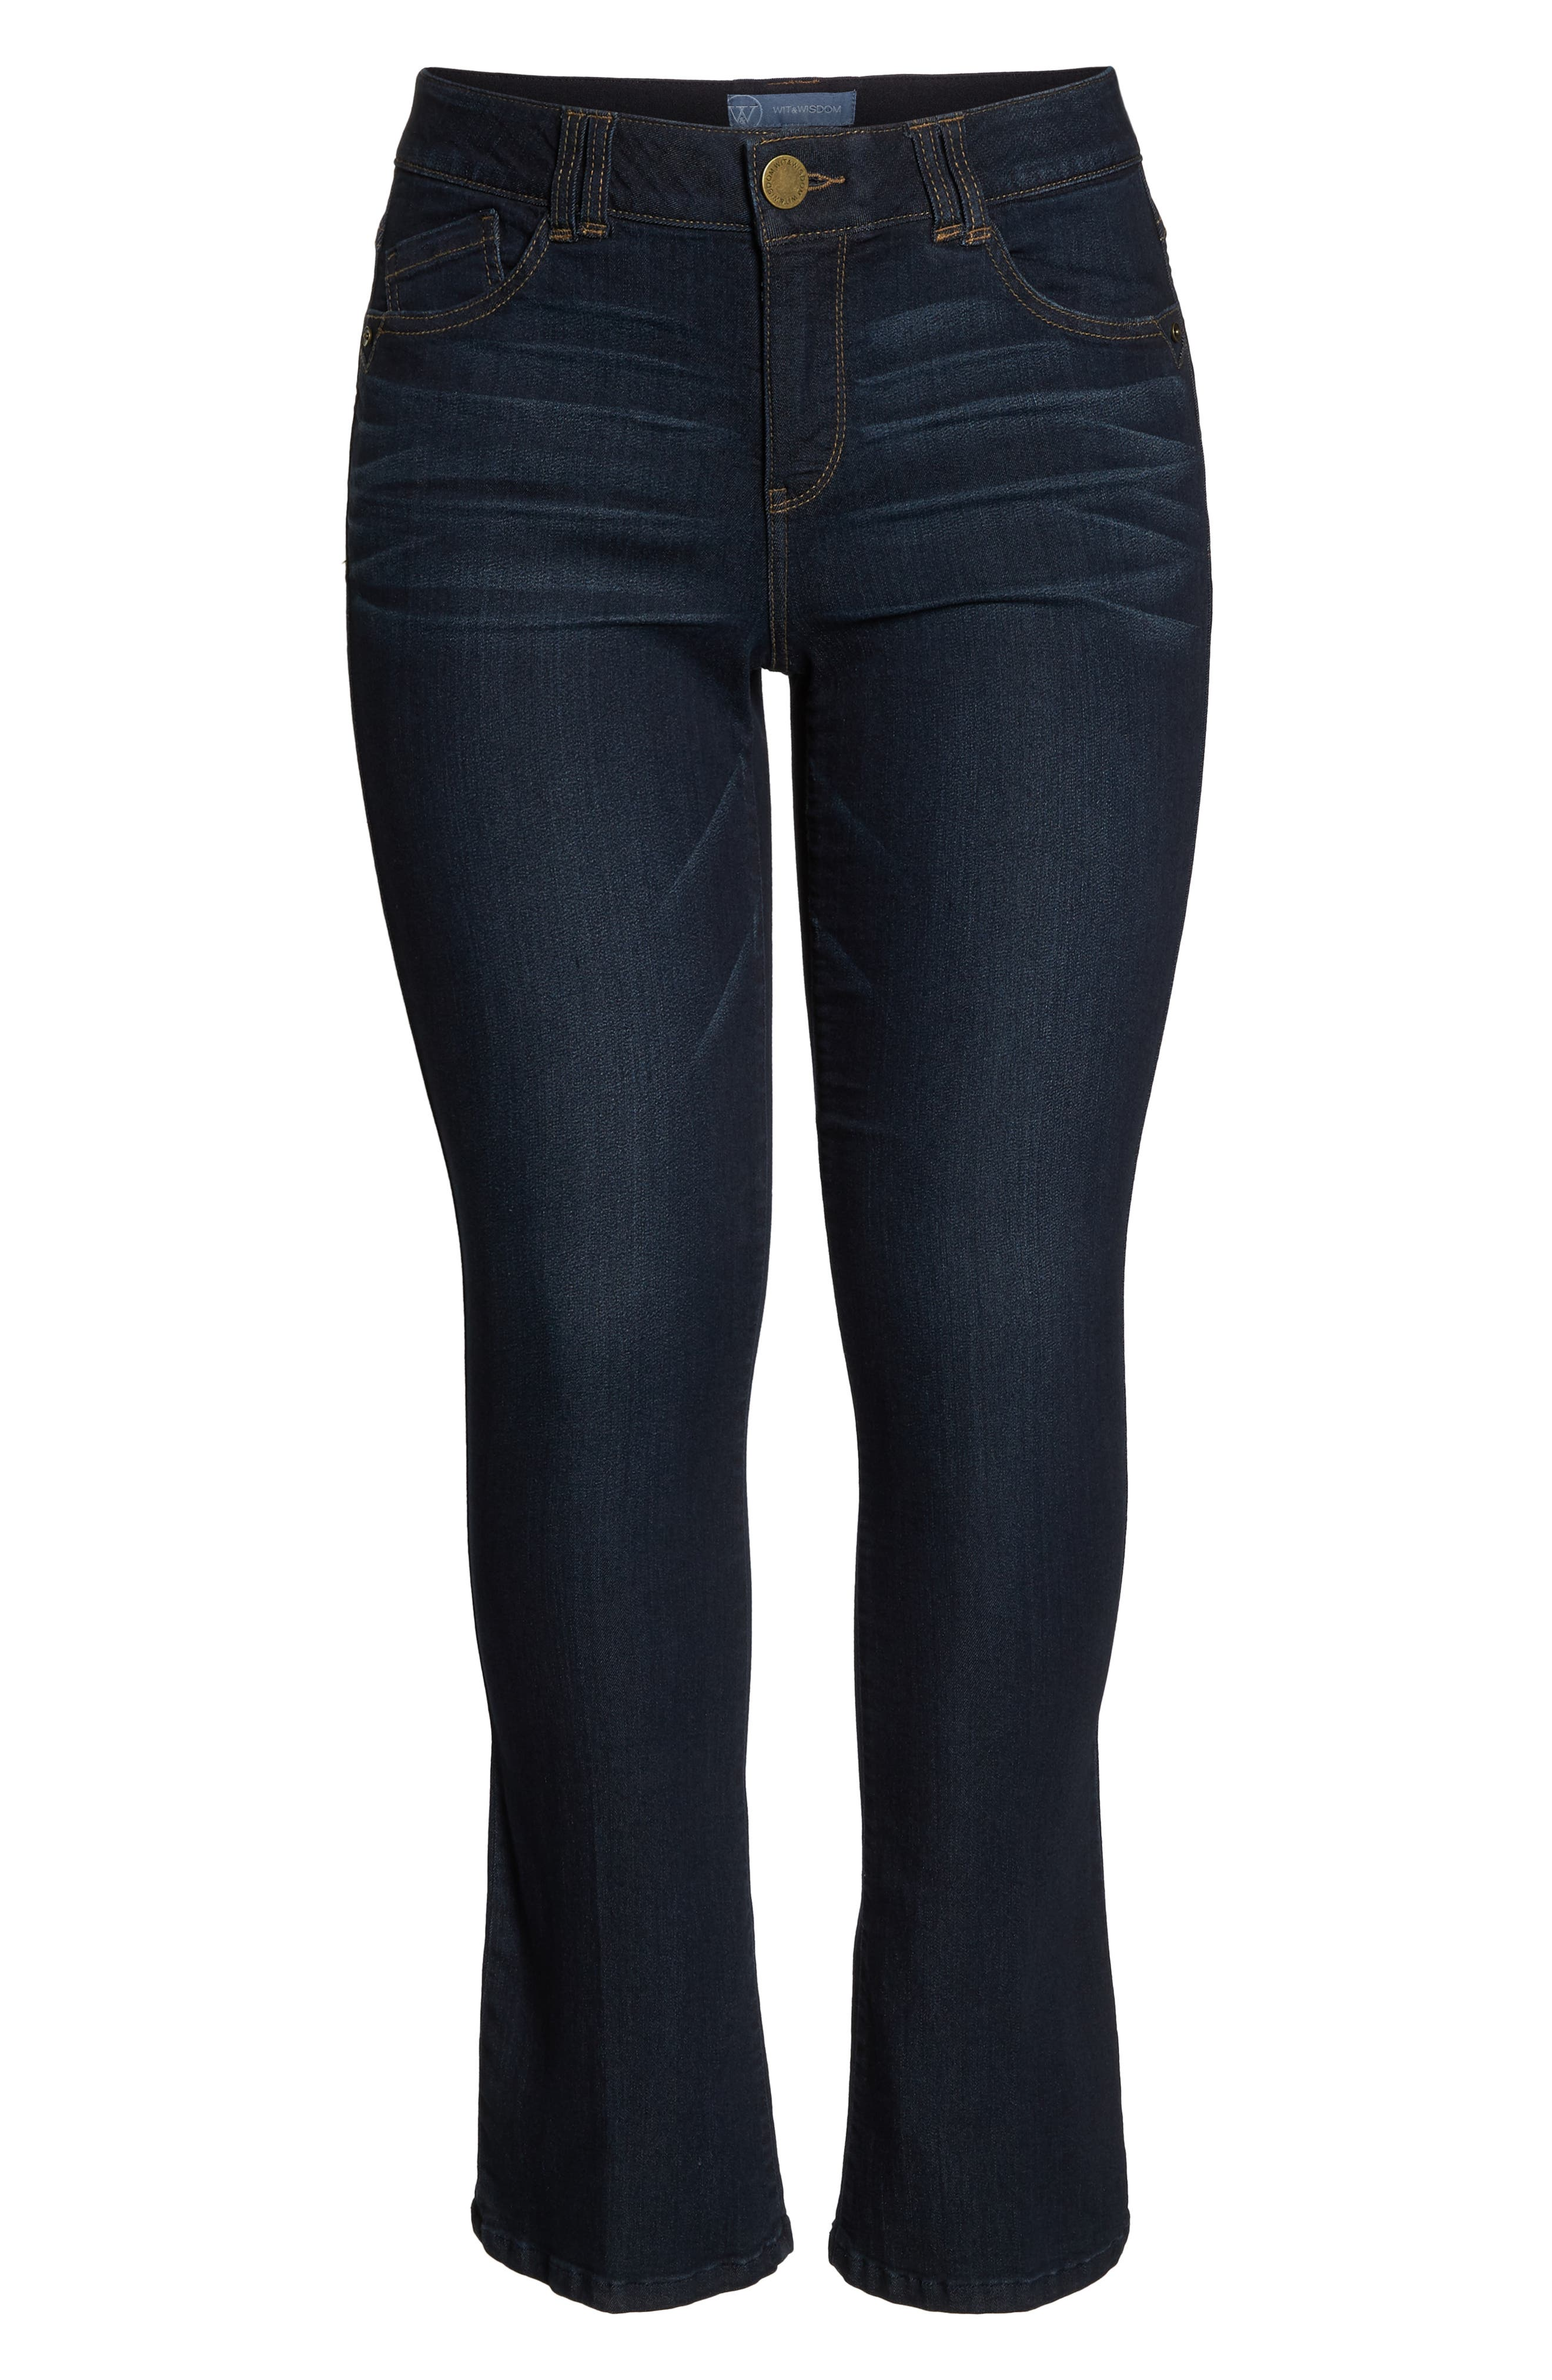 WIT & WISDOM, 'Itty Bitty' Bootcut Jeans, Alternate thumbnail 7, color, INDIGO